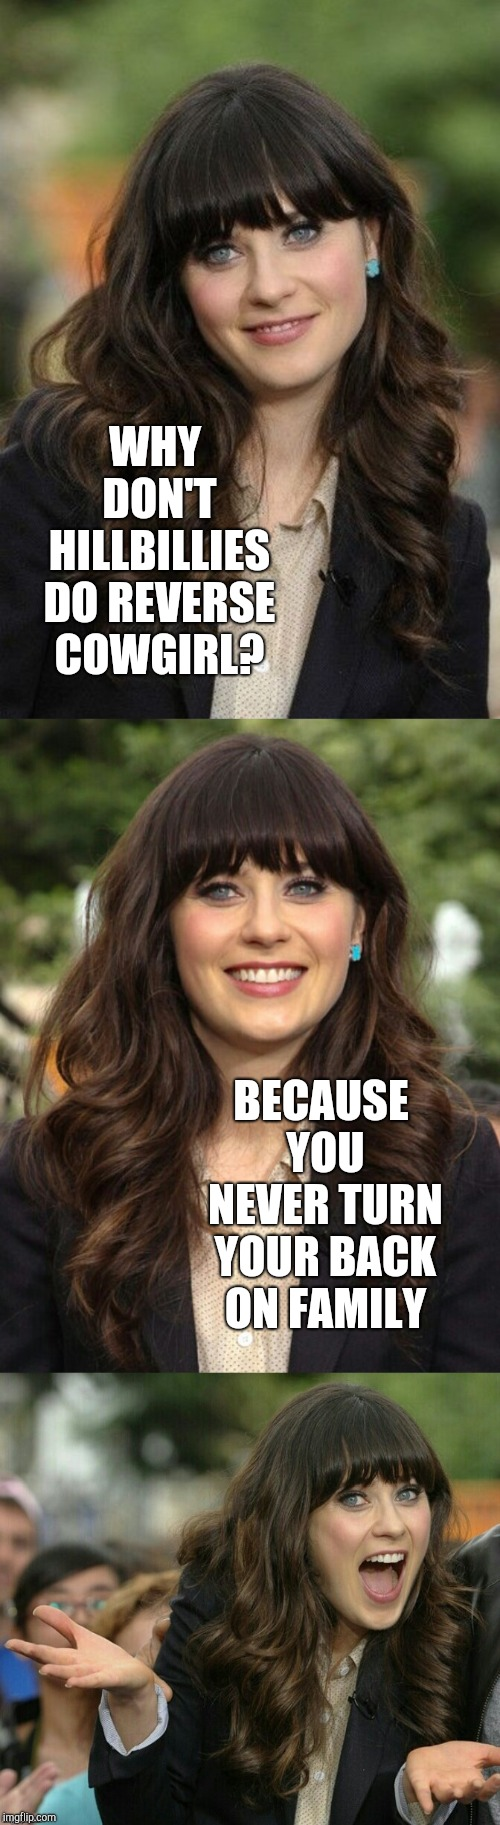 Dirty Meme Week, Sep. 24 - 30, a socrates event! | WHY DON'T HILLBILLIES DO REVERSE COWGIRL? BECAUSE YOU NEVER TURN YOUR BACK ON FAMILY | image tagged in zooey deschanel joke template,zooey deschanel,jbmemegeek,dirty meme week | made w/ Imgflip meme maker